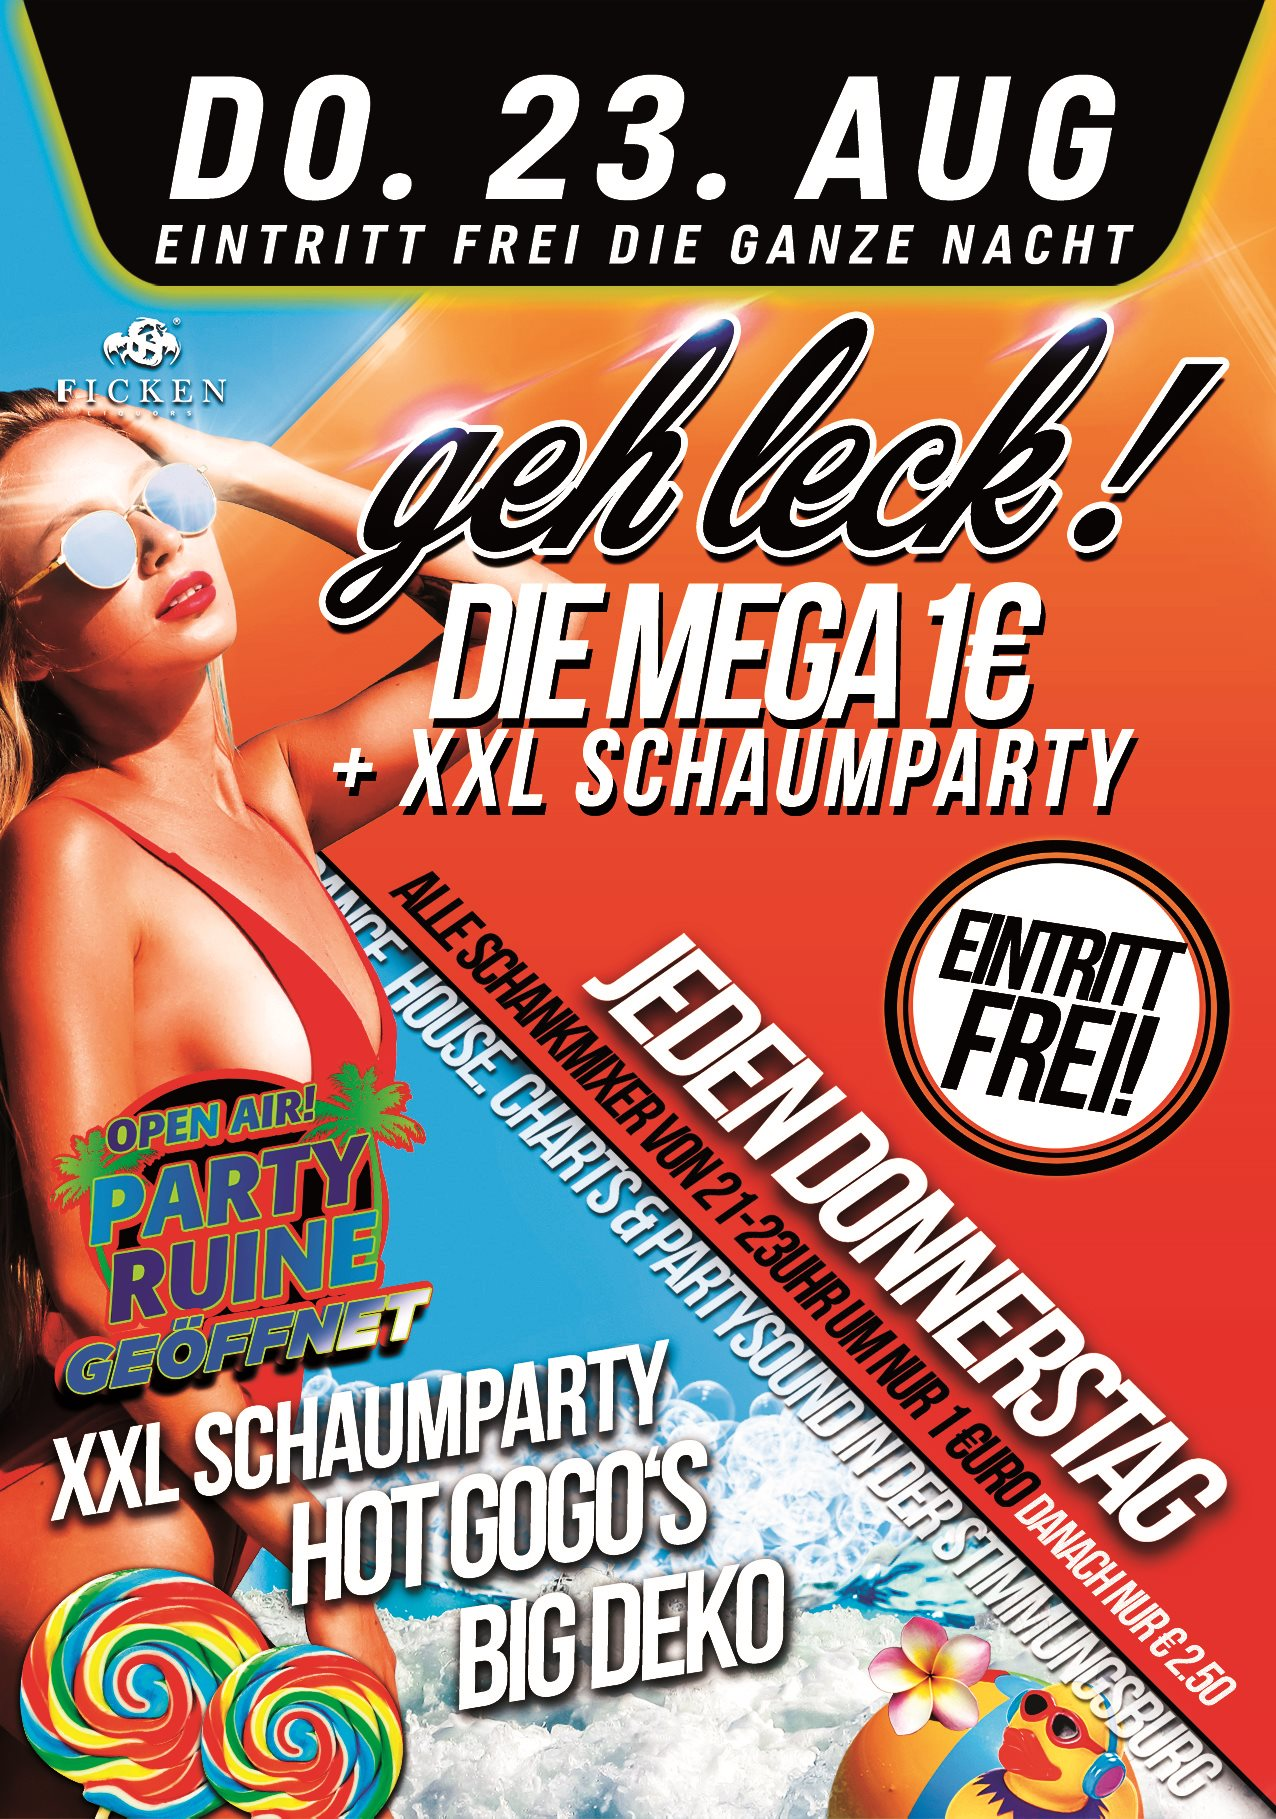 Geh Leck! Die Mega 1€ Party + XXL SCHAUMPARTY